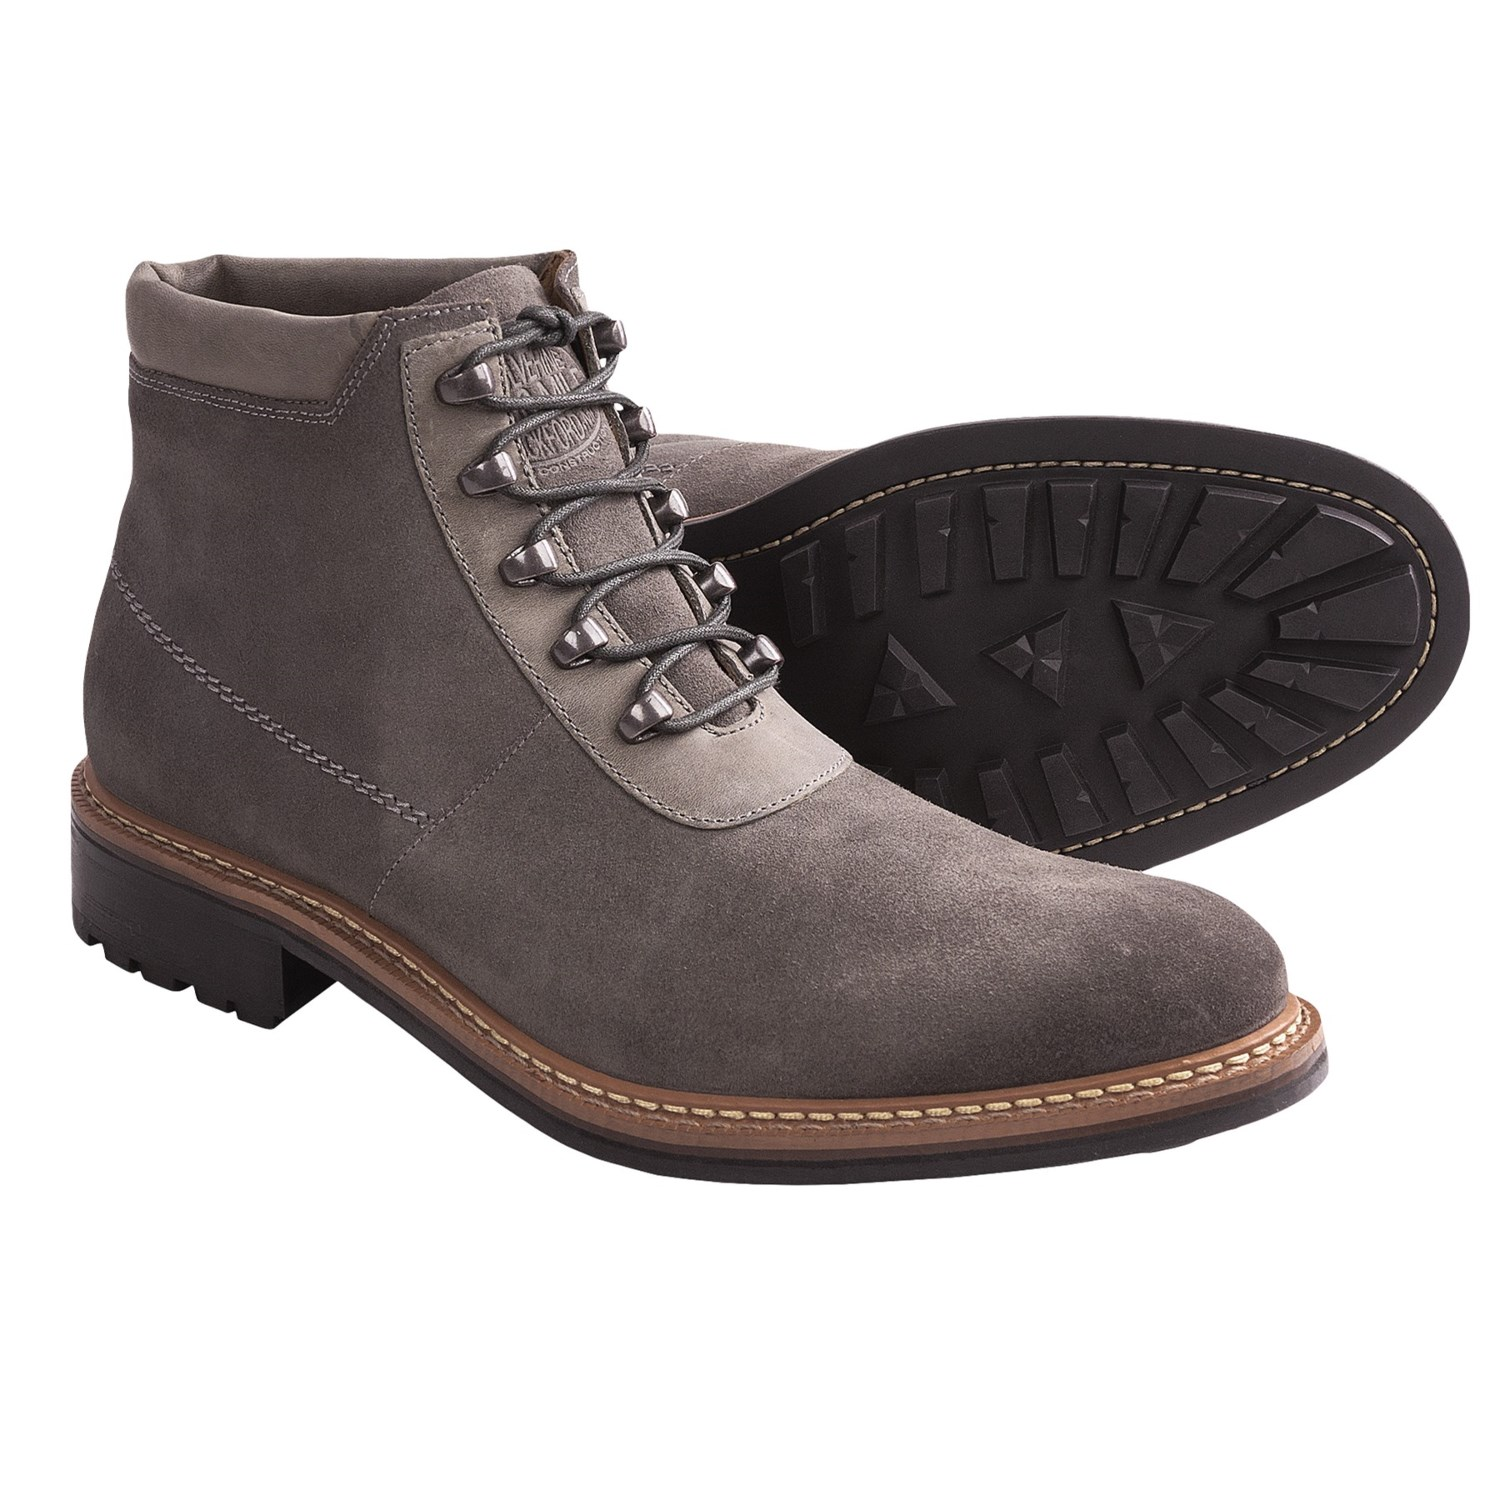 e78f81a50ed Wolverine 1000 Mile Wilton Chukka Boots - Suede, Factory 2nds (For Men)